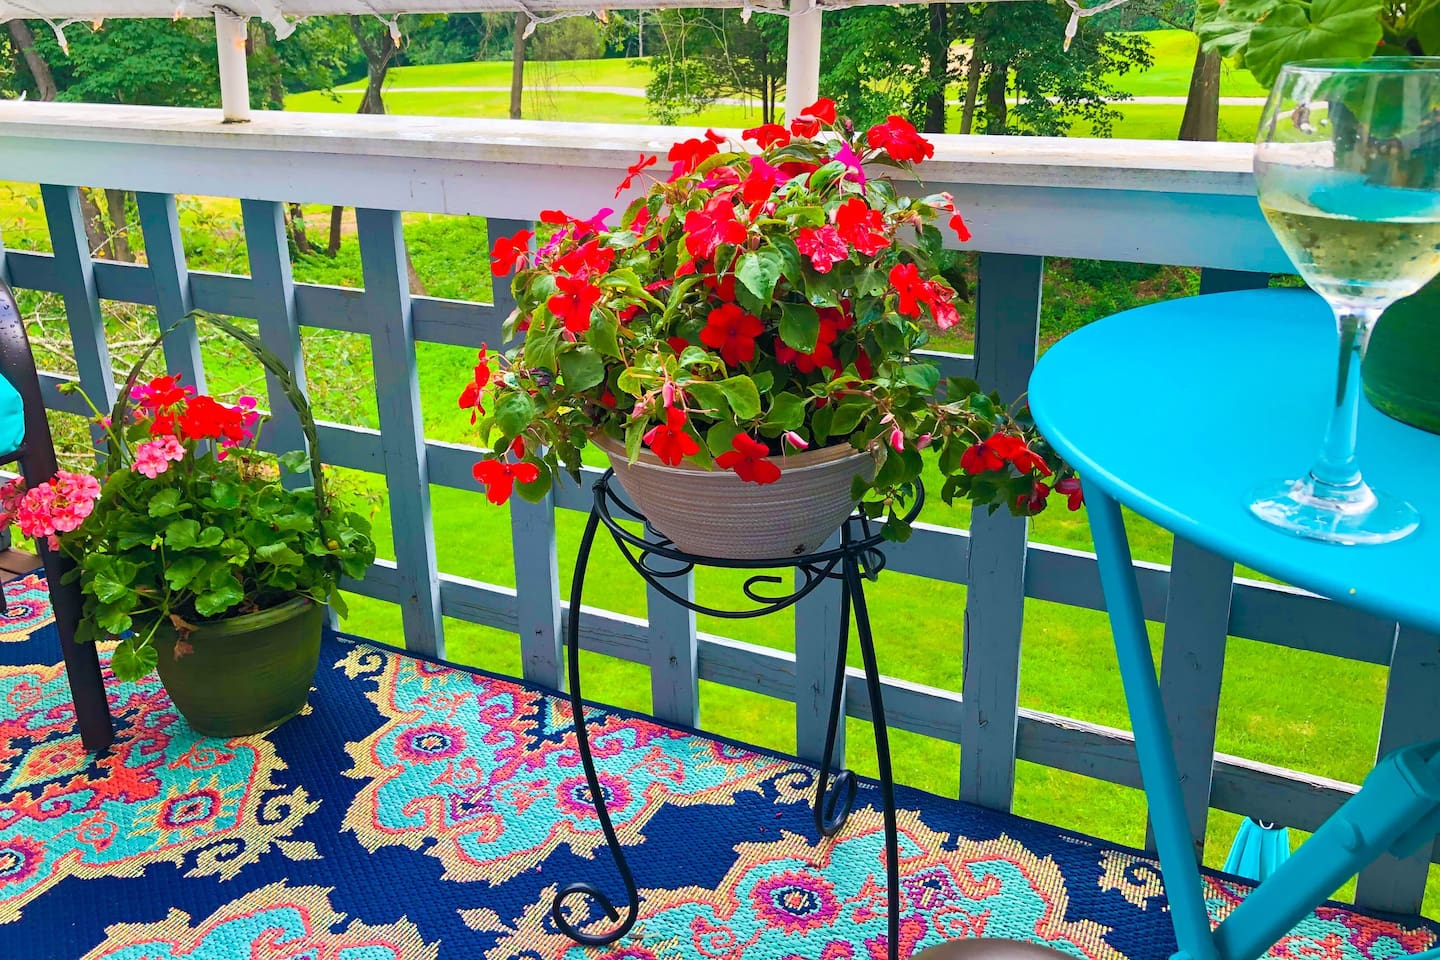 Balcony oasis ... what a great place to relax after a day at the spa, sightseeing, or before heading to the Mohegan Sun for dinner and a concert!